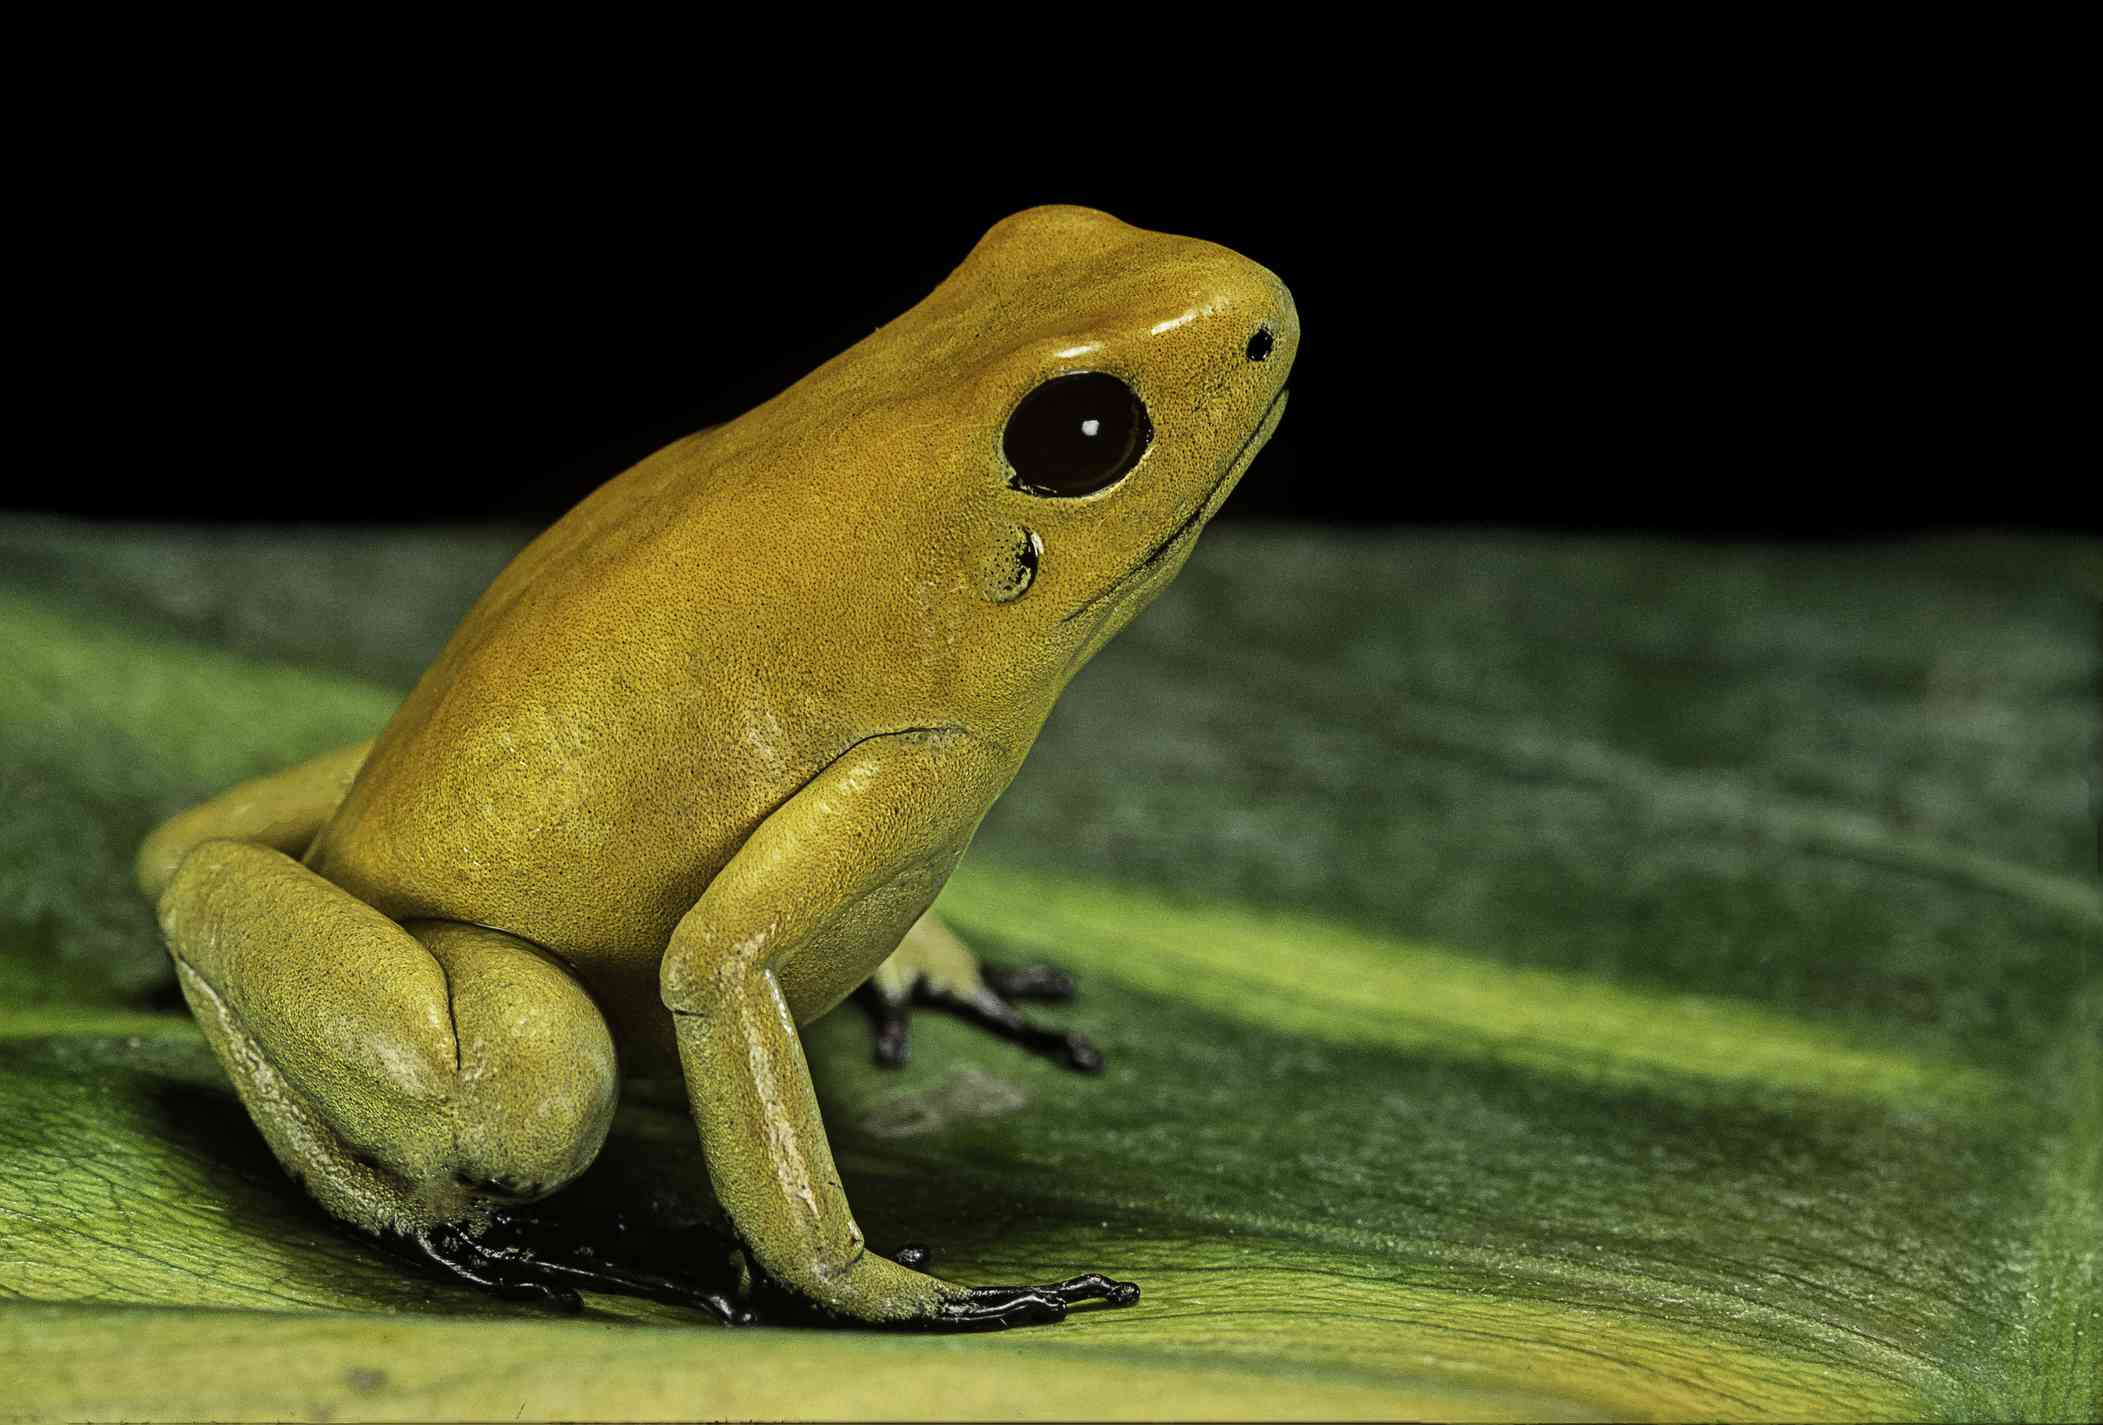 A golden poison frog (Phyllobates terribilis) sits on a green leaf